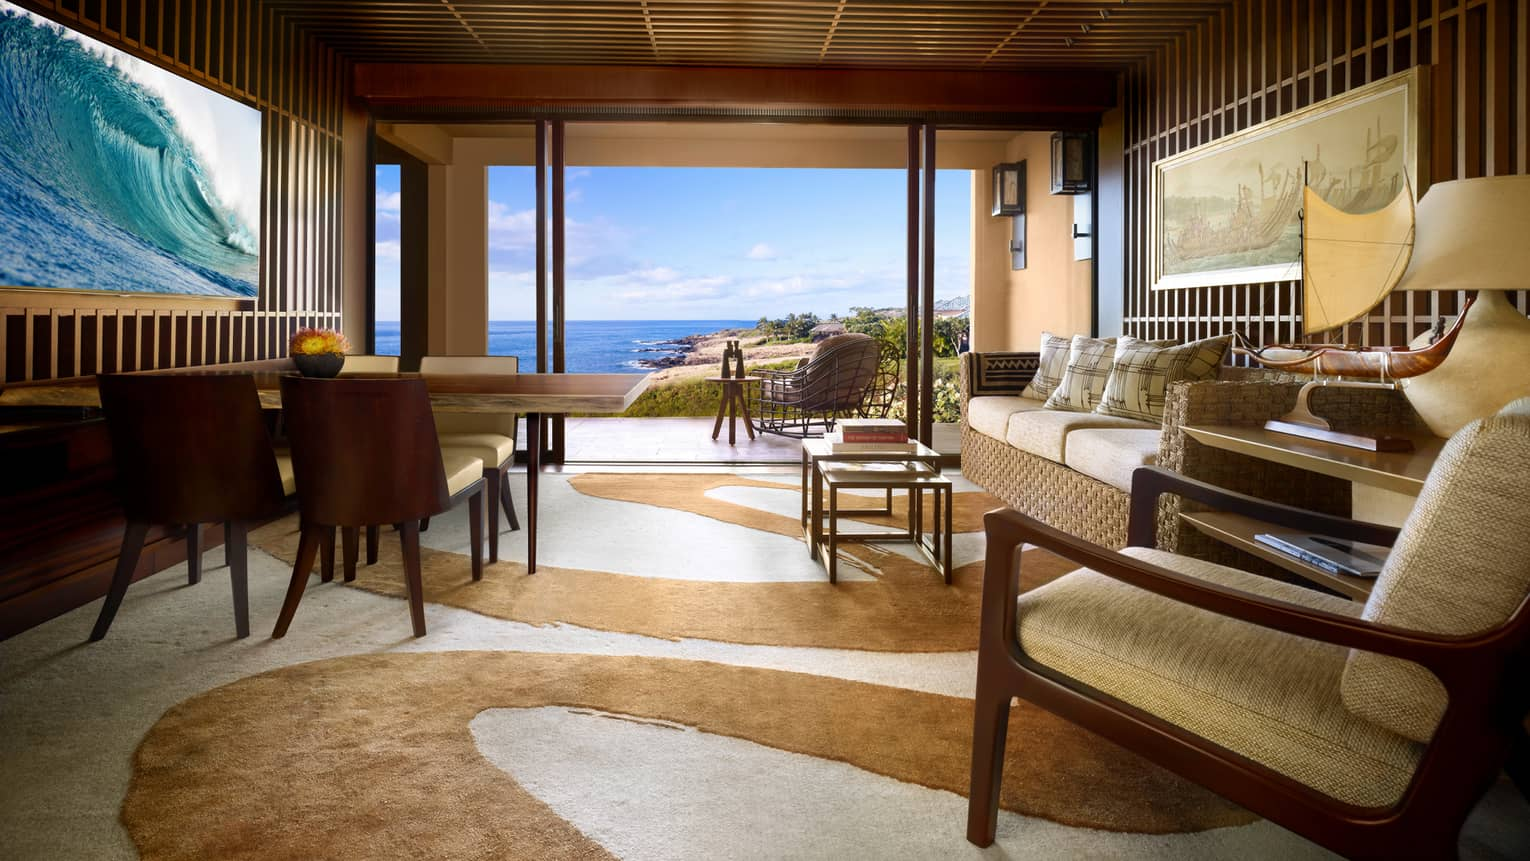 Ohana Ocean-View Suite teak-panelled walls, wave screen over wood dining table, sofa, swirl-patterned carpet